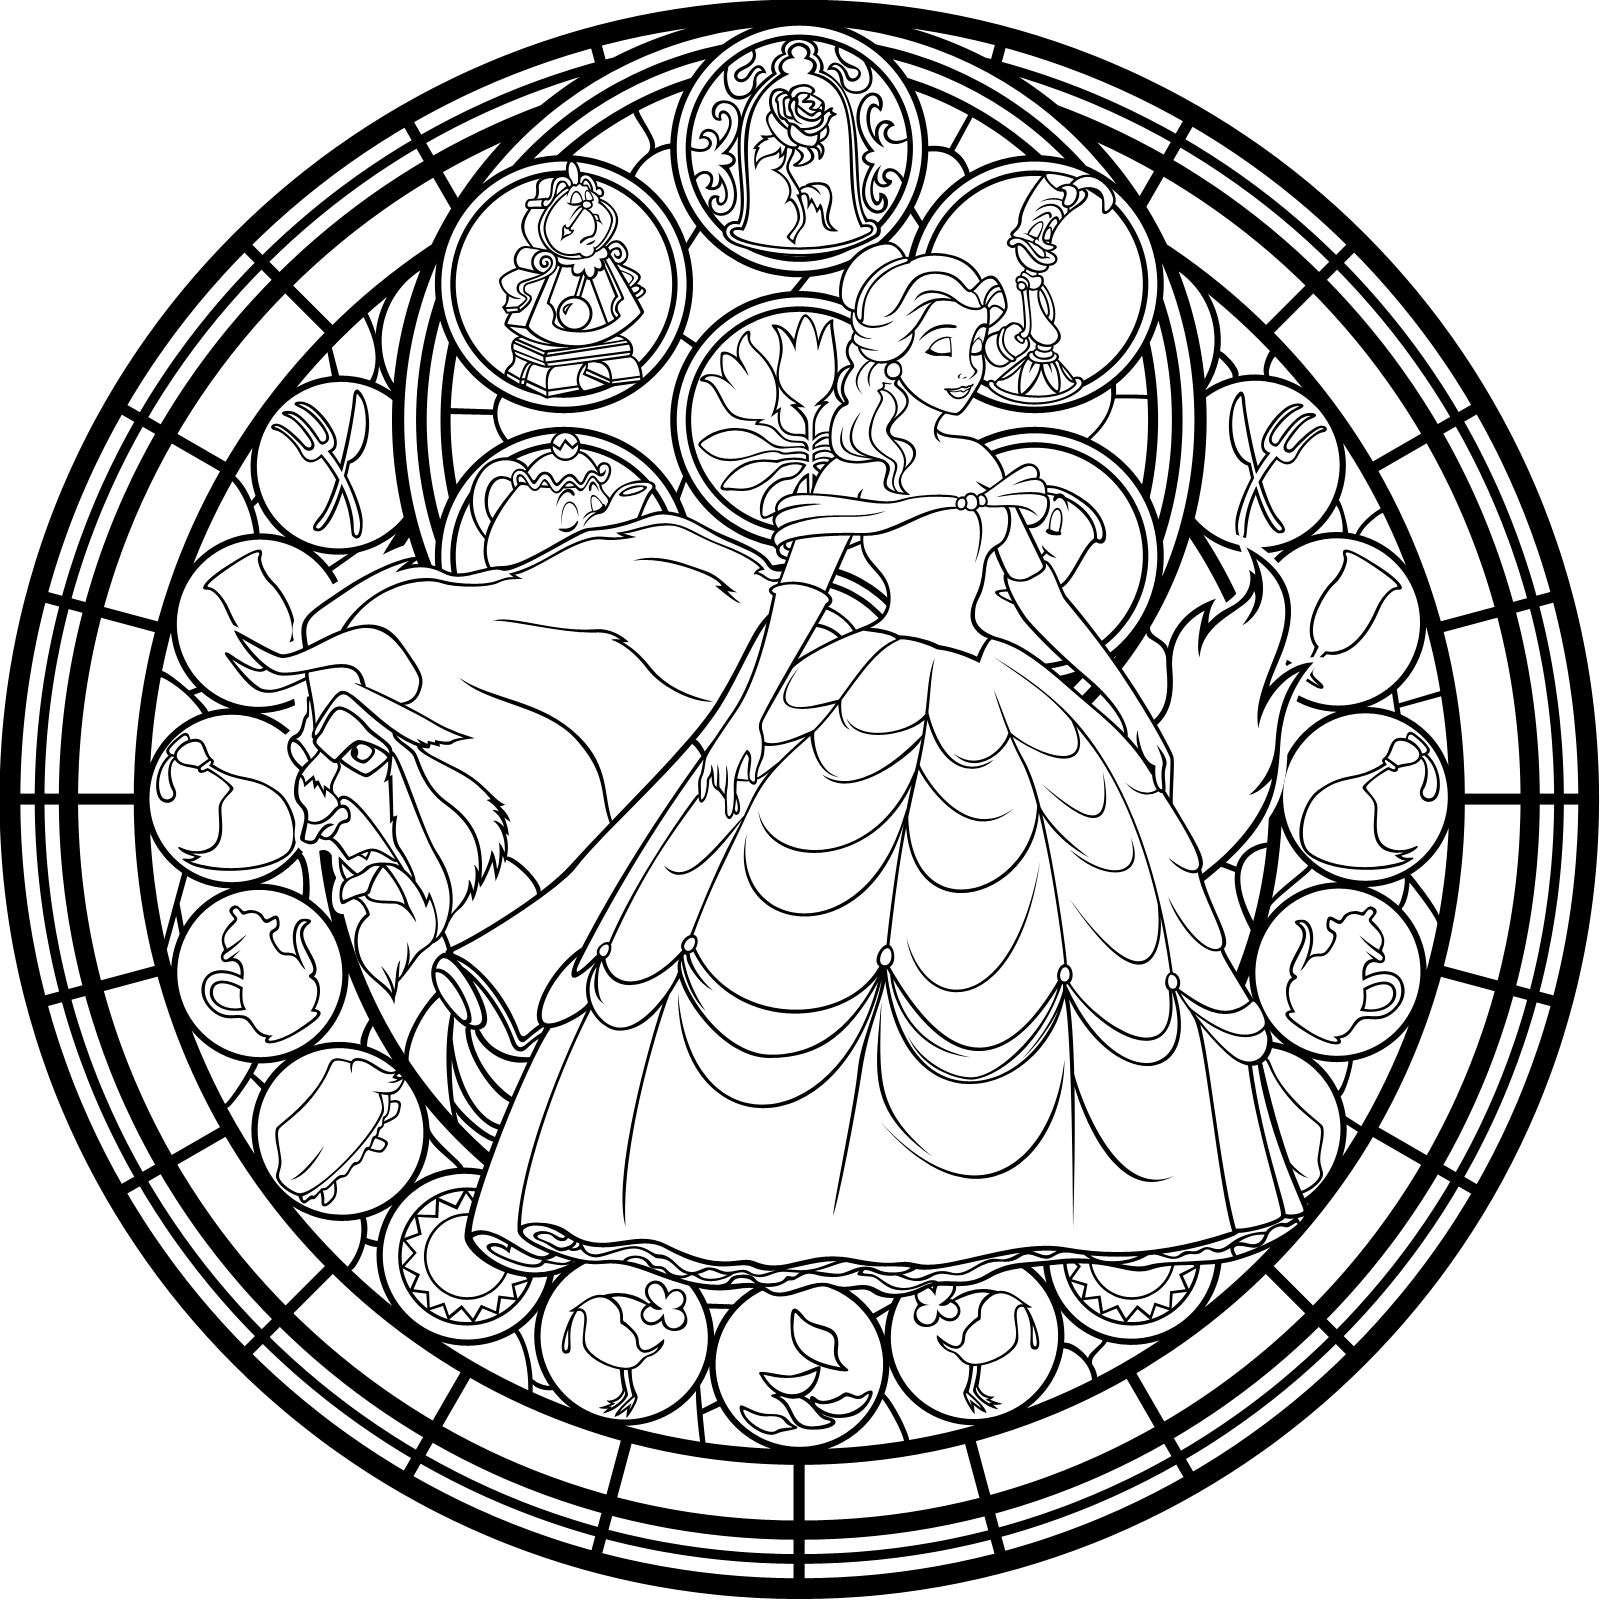 Pin By Dawn Zimmerschied On Coloring Pages Coloring Pages Adult